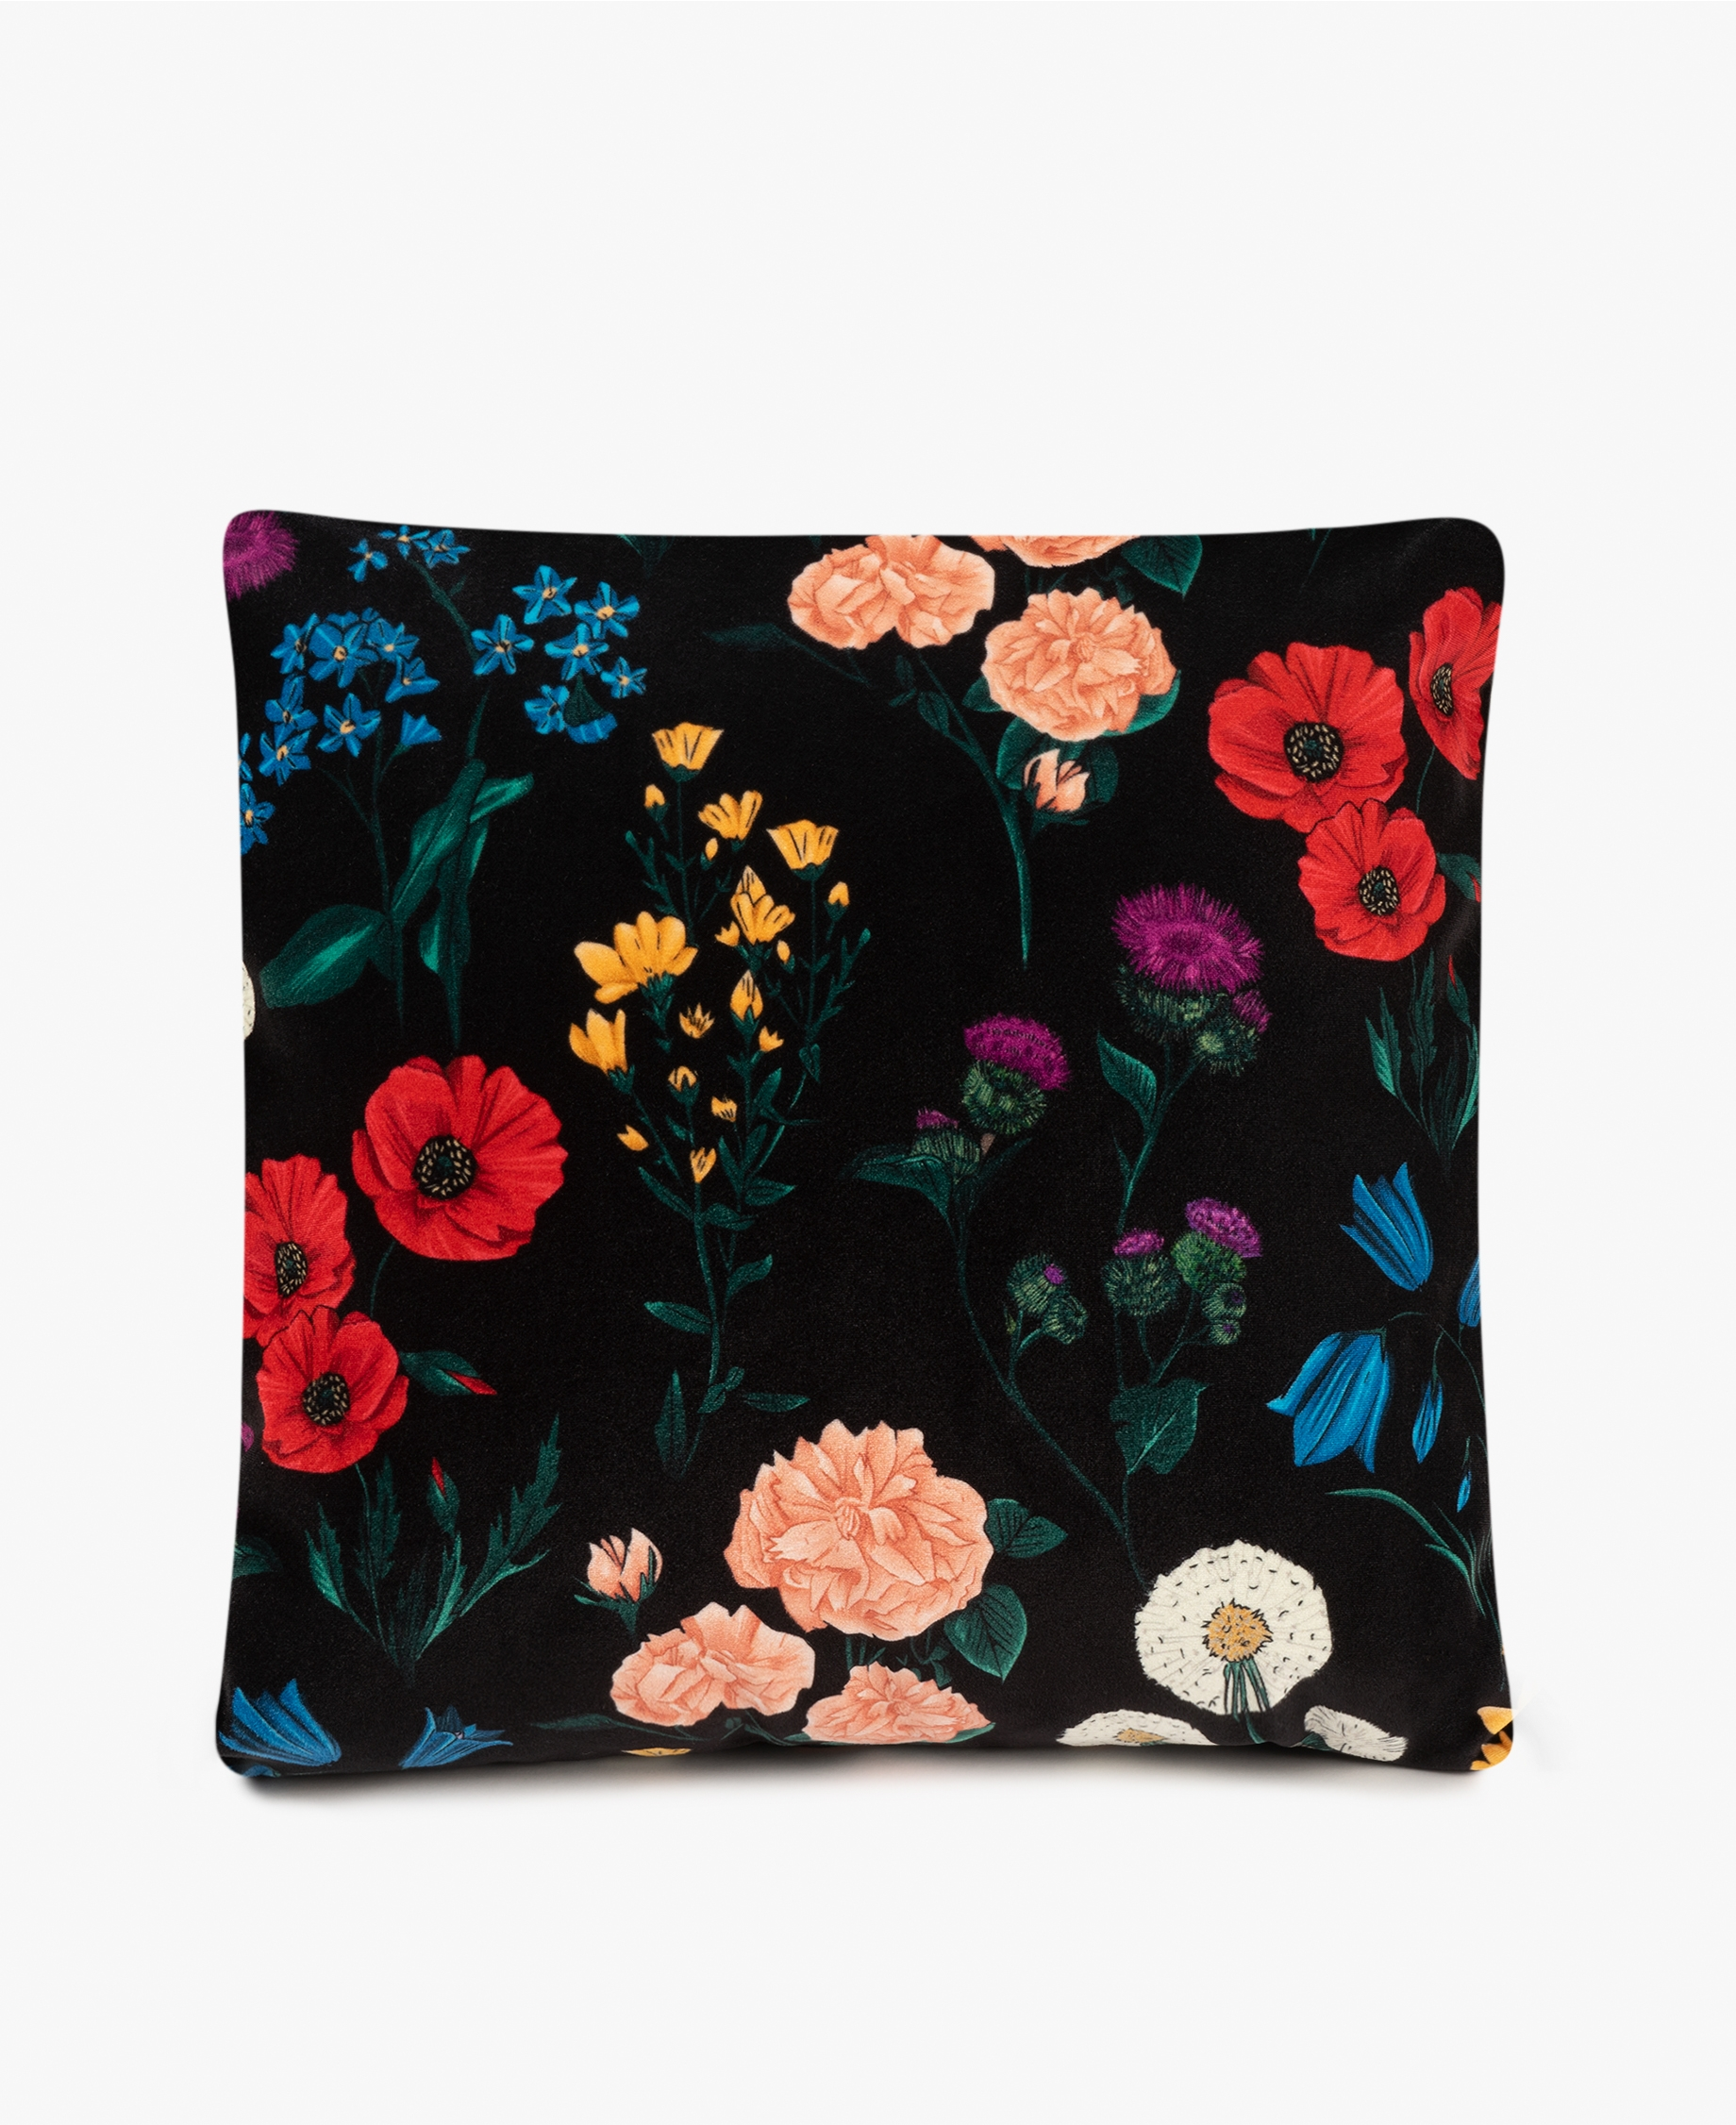 Coussin en velours Blossom - WOUUF